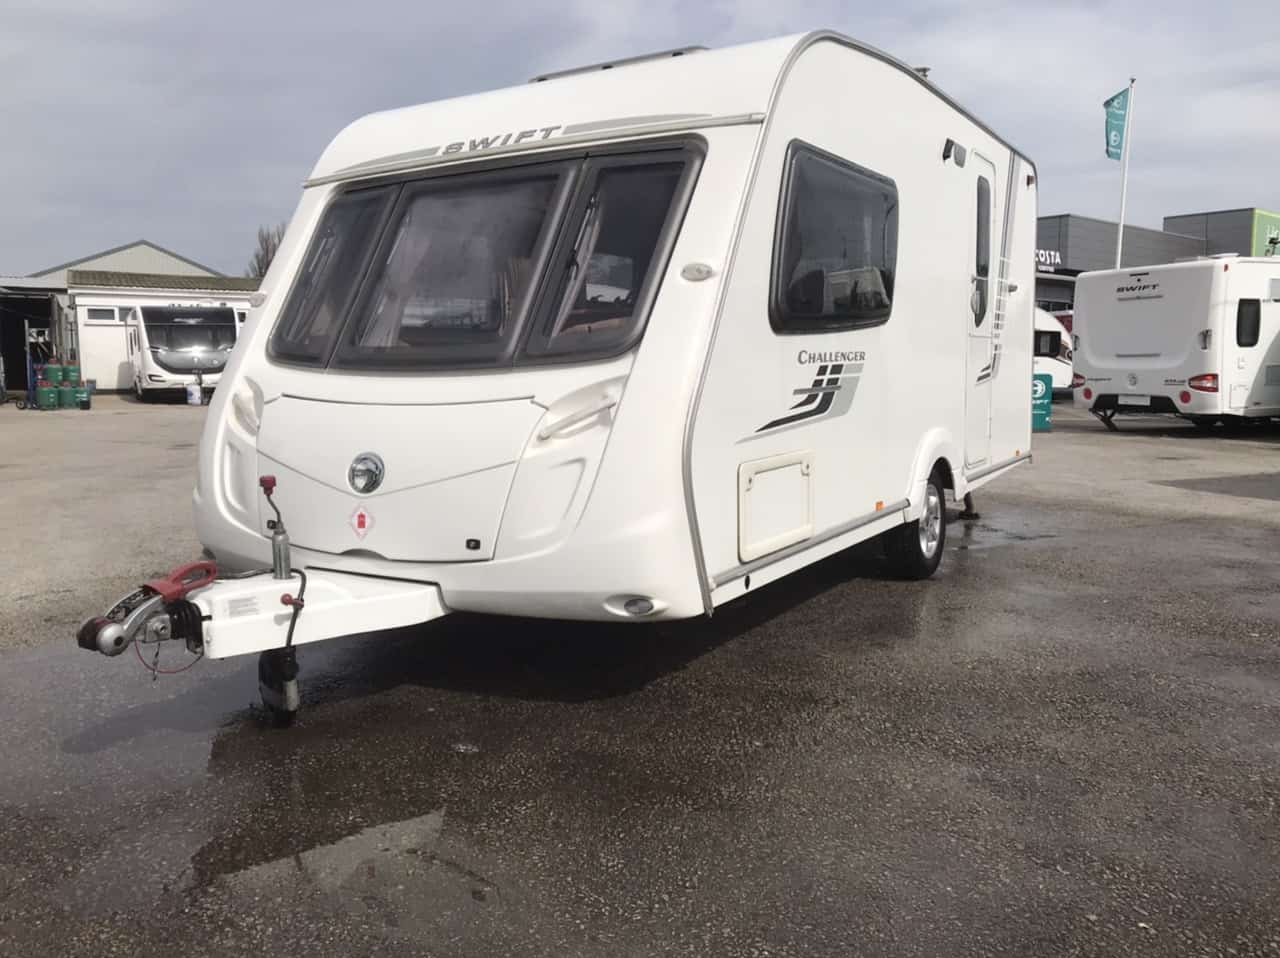 SWIFT CHALLENGER 480 / 2 berth -, full rear washroom incorperating a seperate shower cubicle, toilet and vanity unit - central offside kitchen - central nearside dinette -